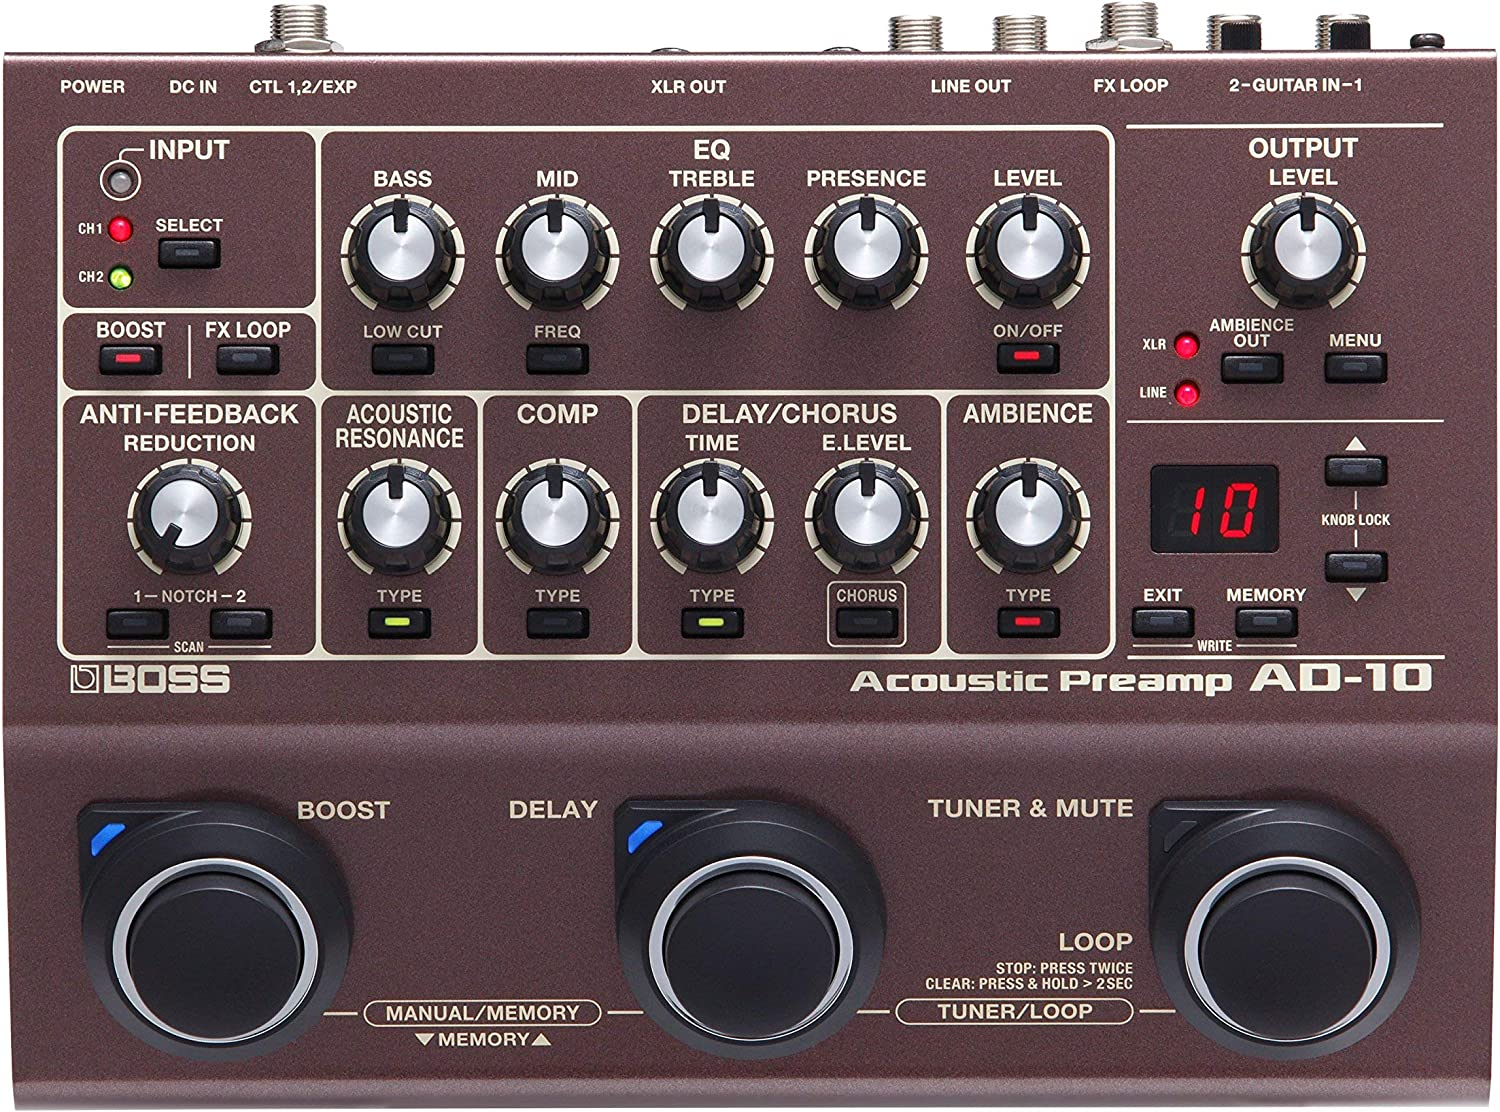 AD-10 Renewed BOSS Acoustic Preamp Guitar Pedal